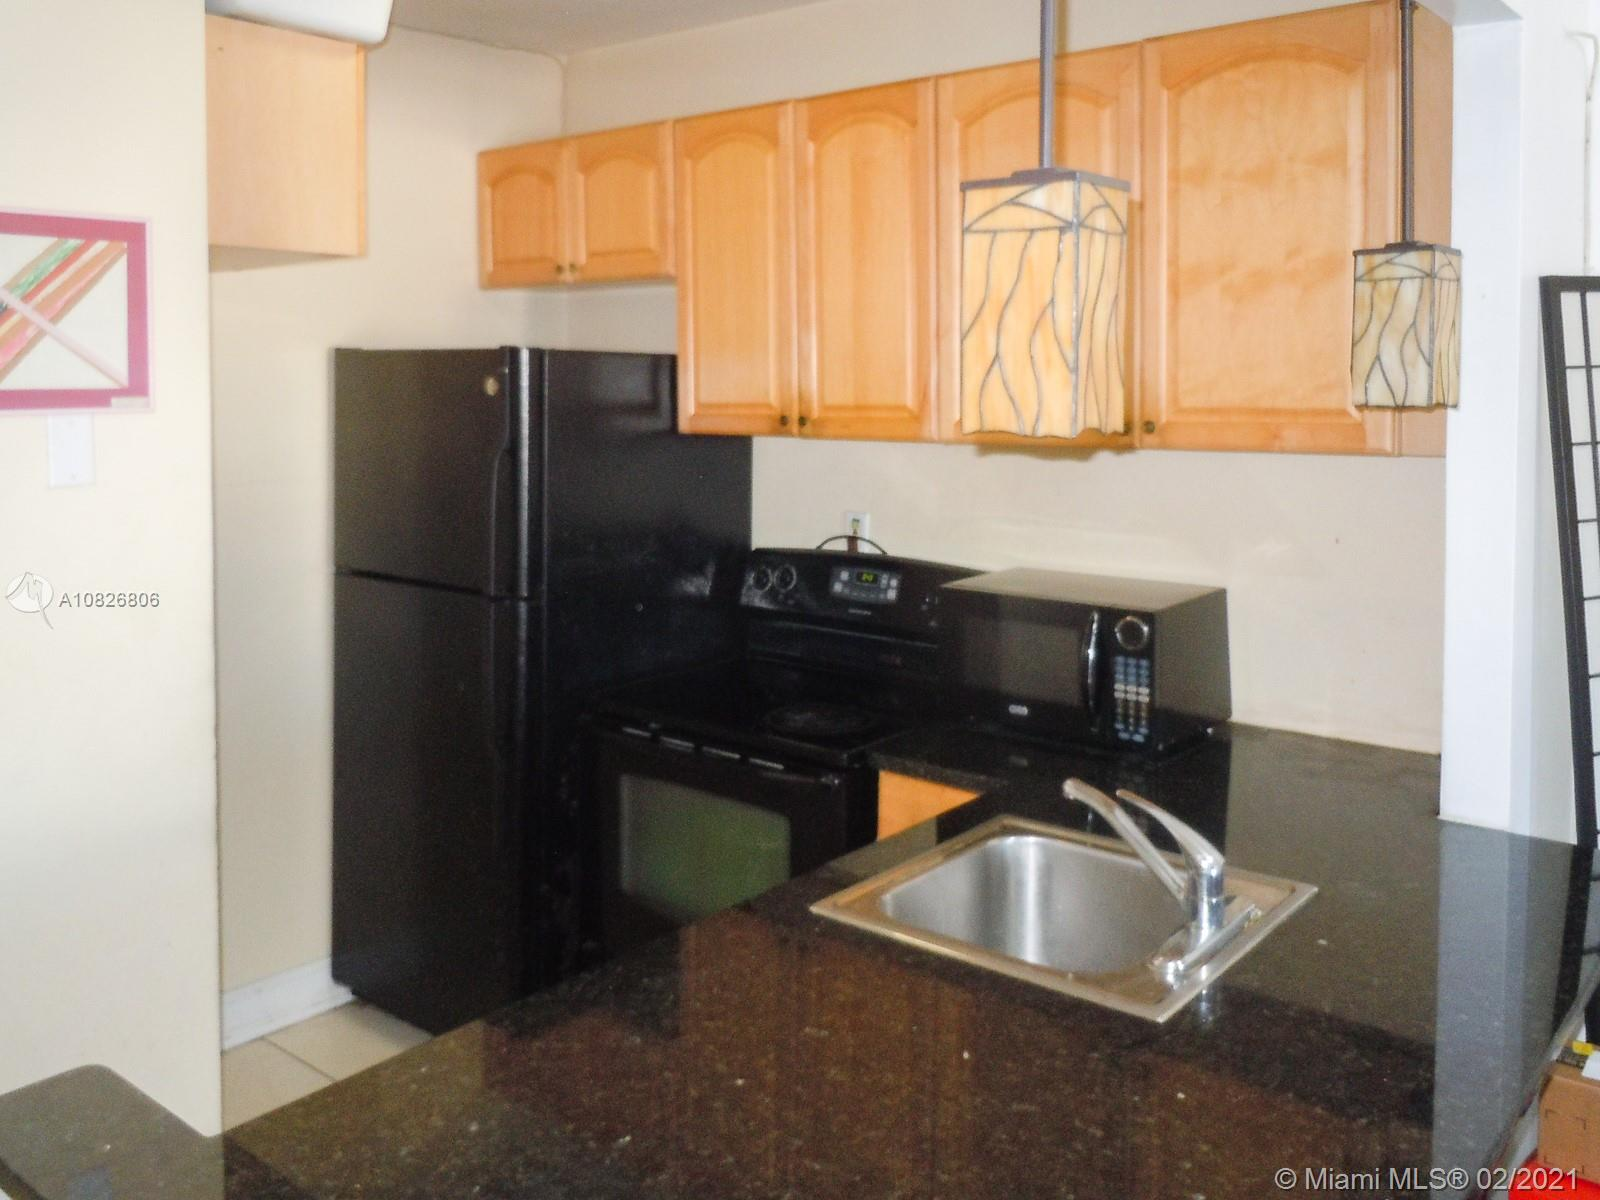 Island Place, 1455 N Treasure Dr Unit 7 D, North Bay Village, Florida 33141, image 5